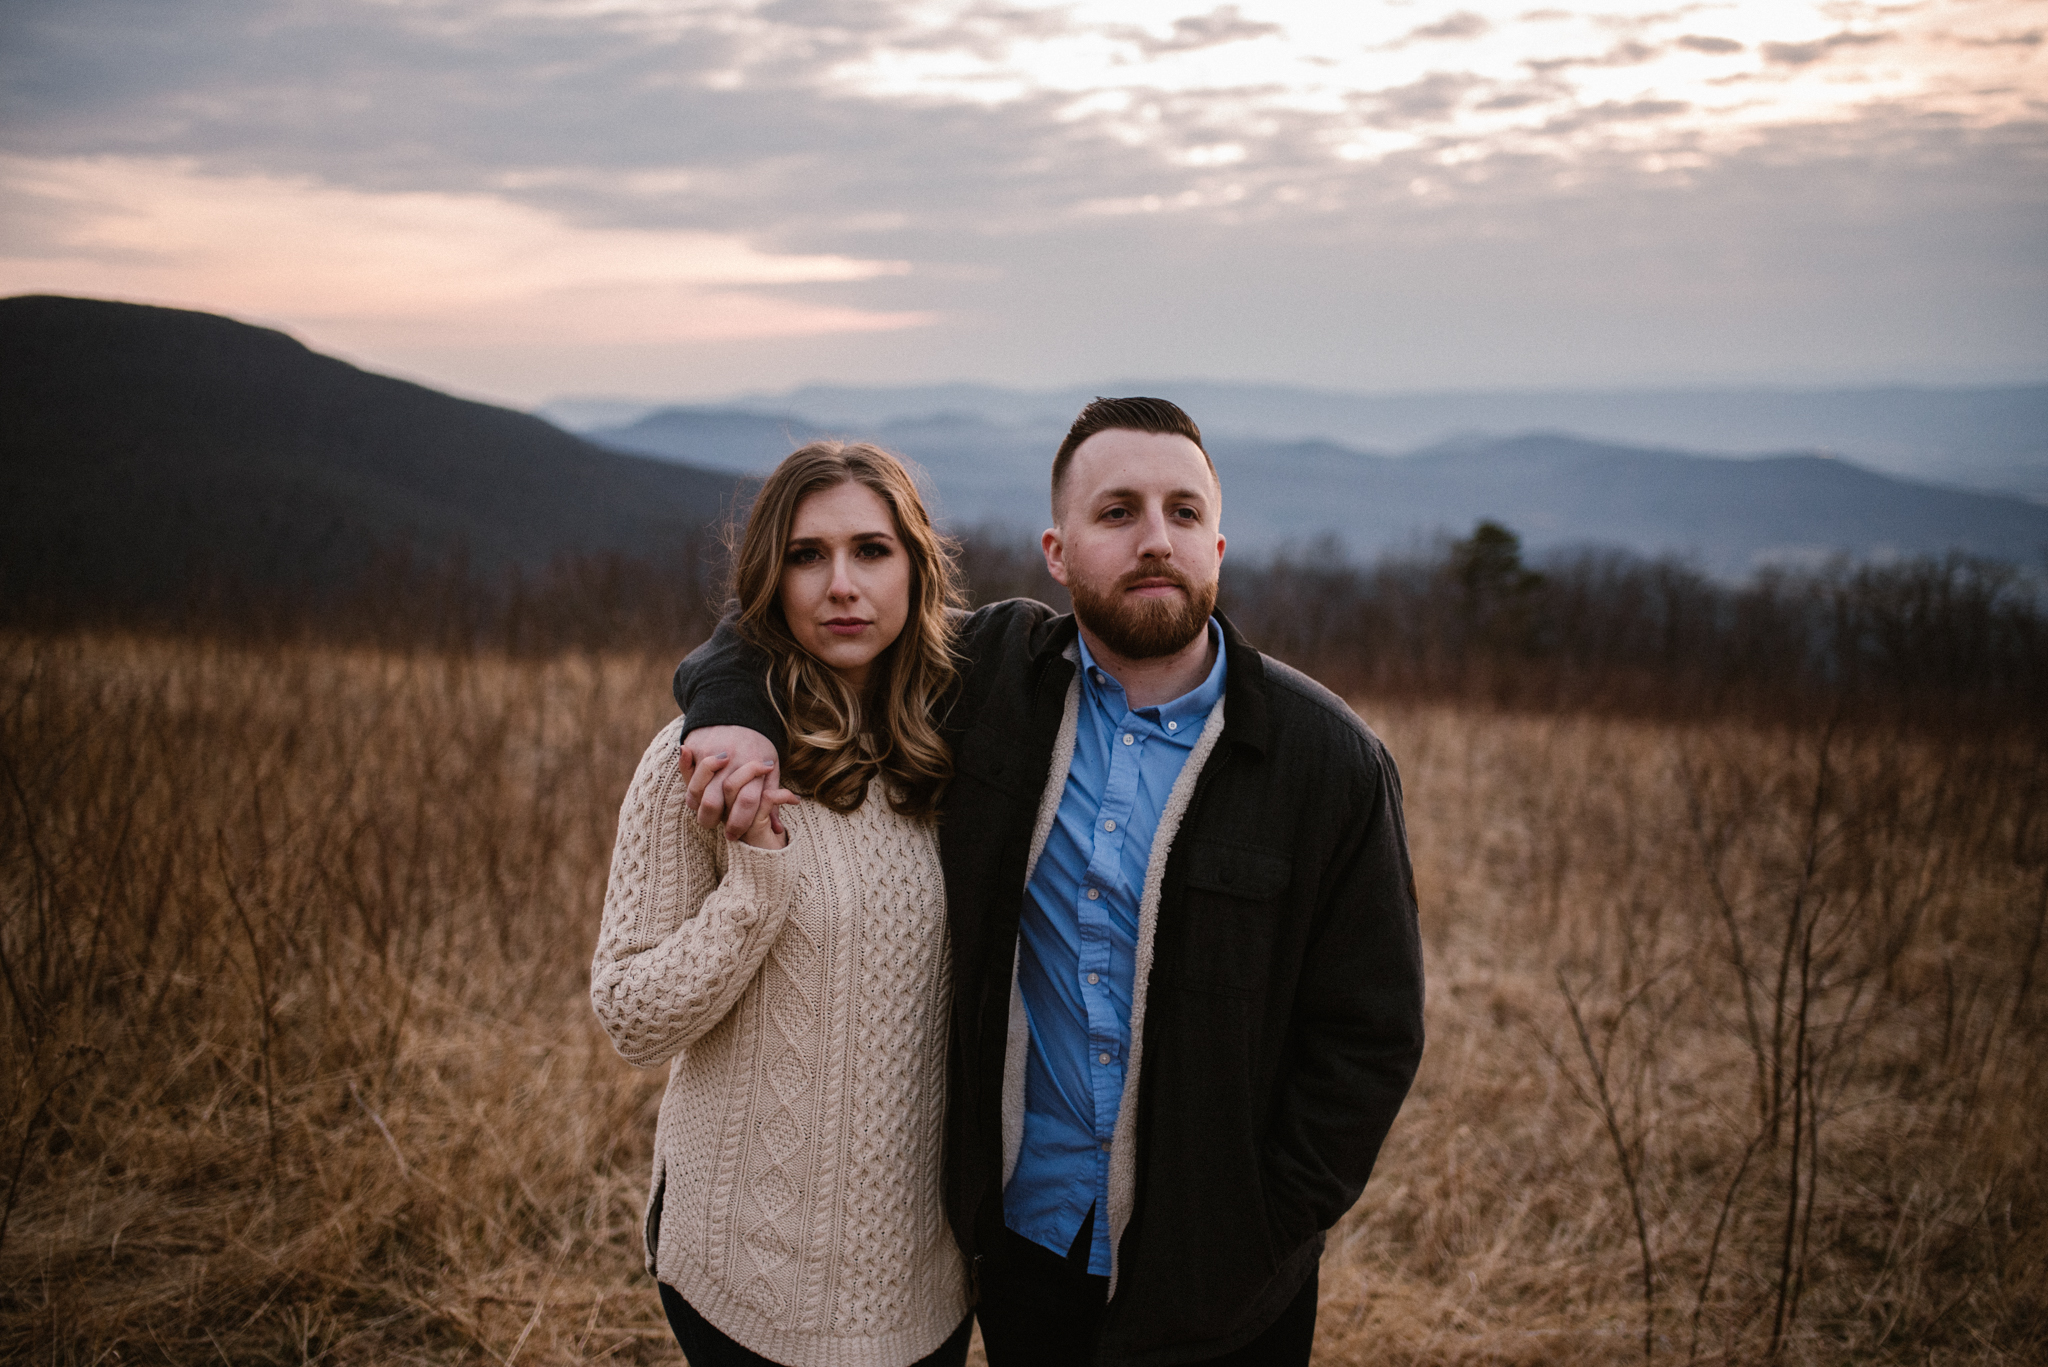 Nicole and Victor - Shenandoah National Park Engagement Photography - Blue Ridge Mountains Adventure Photography - White Sails Creative Photography_37.jpg